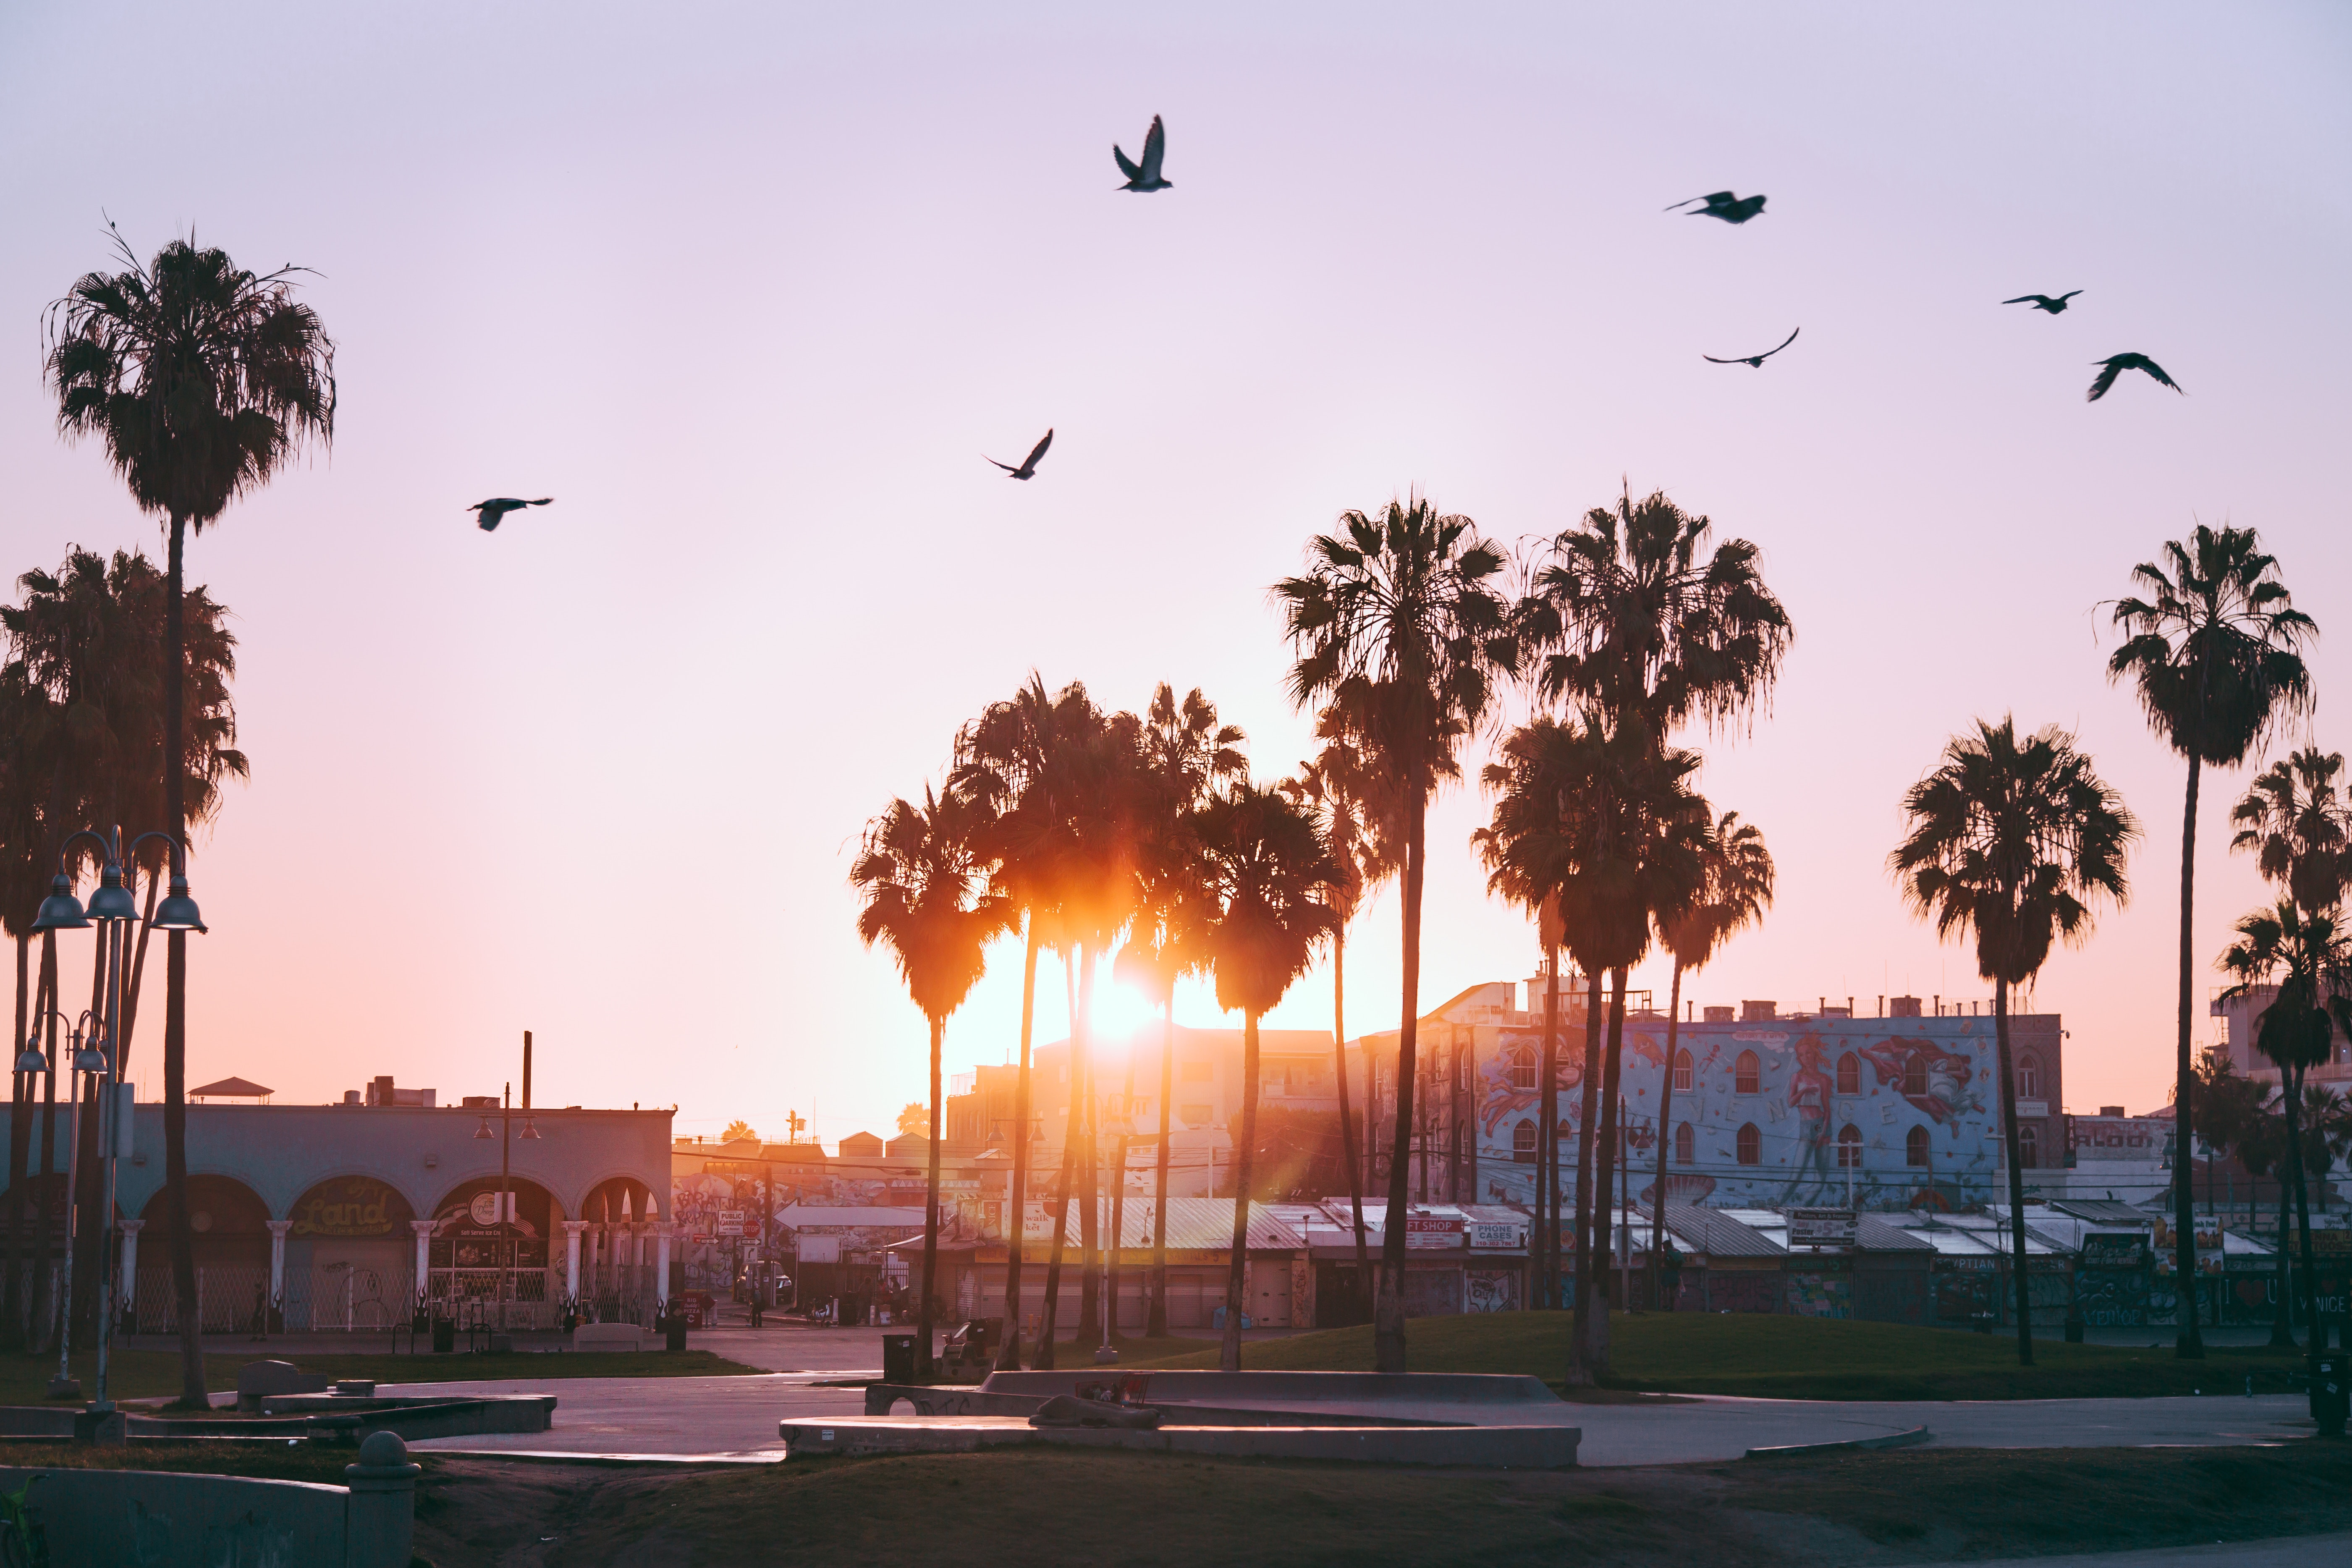 145717 download wallpaper Dawn, Venice Beach, Los Angeles, Usa, United States, Cities, Birds, Palms screensavers and pictures for free